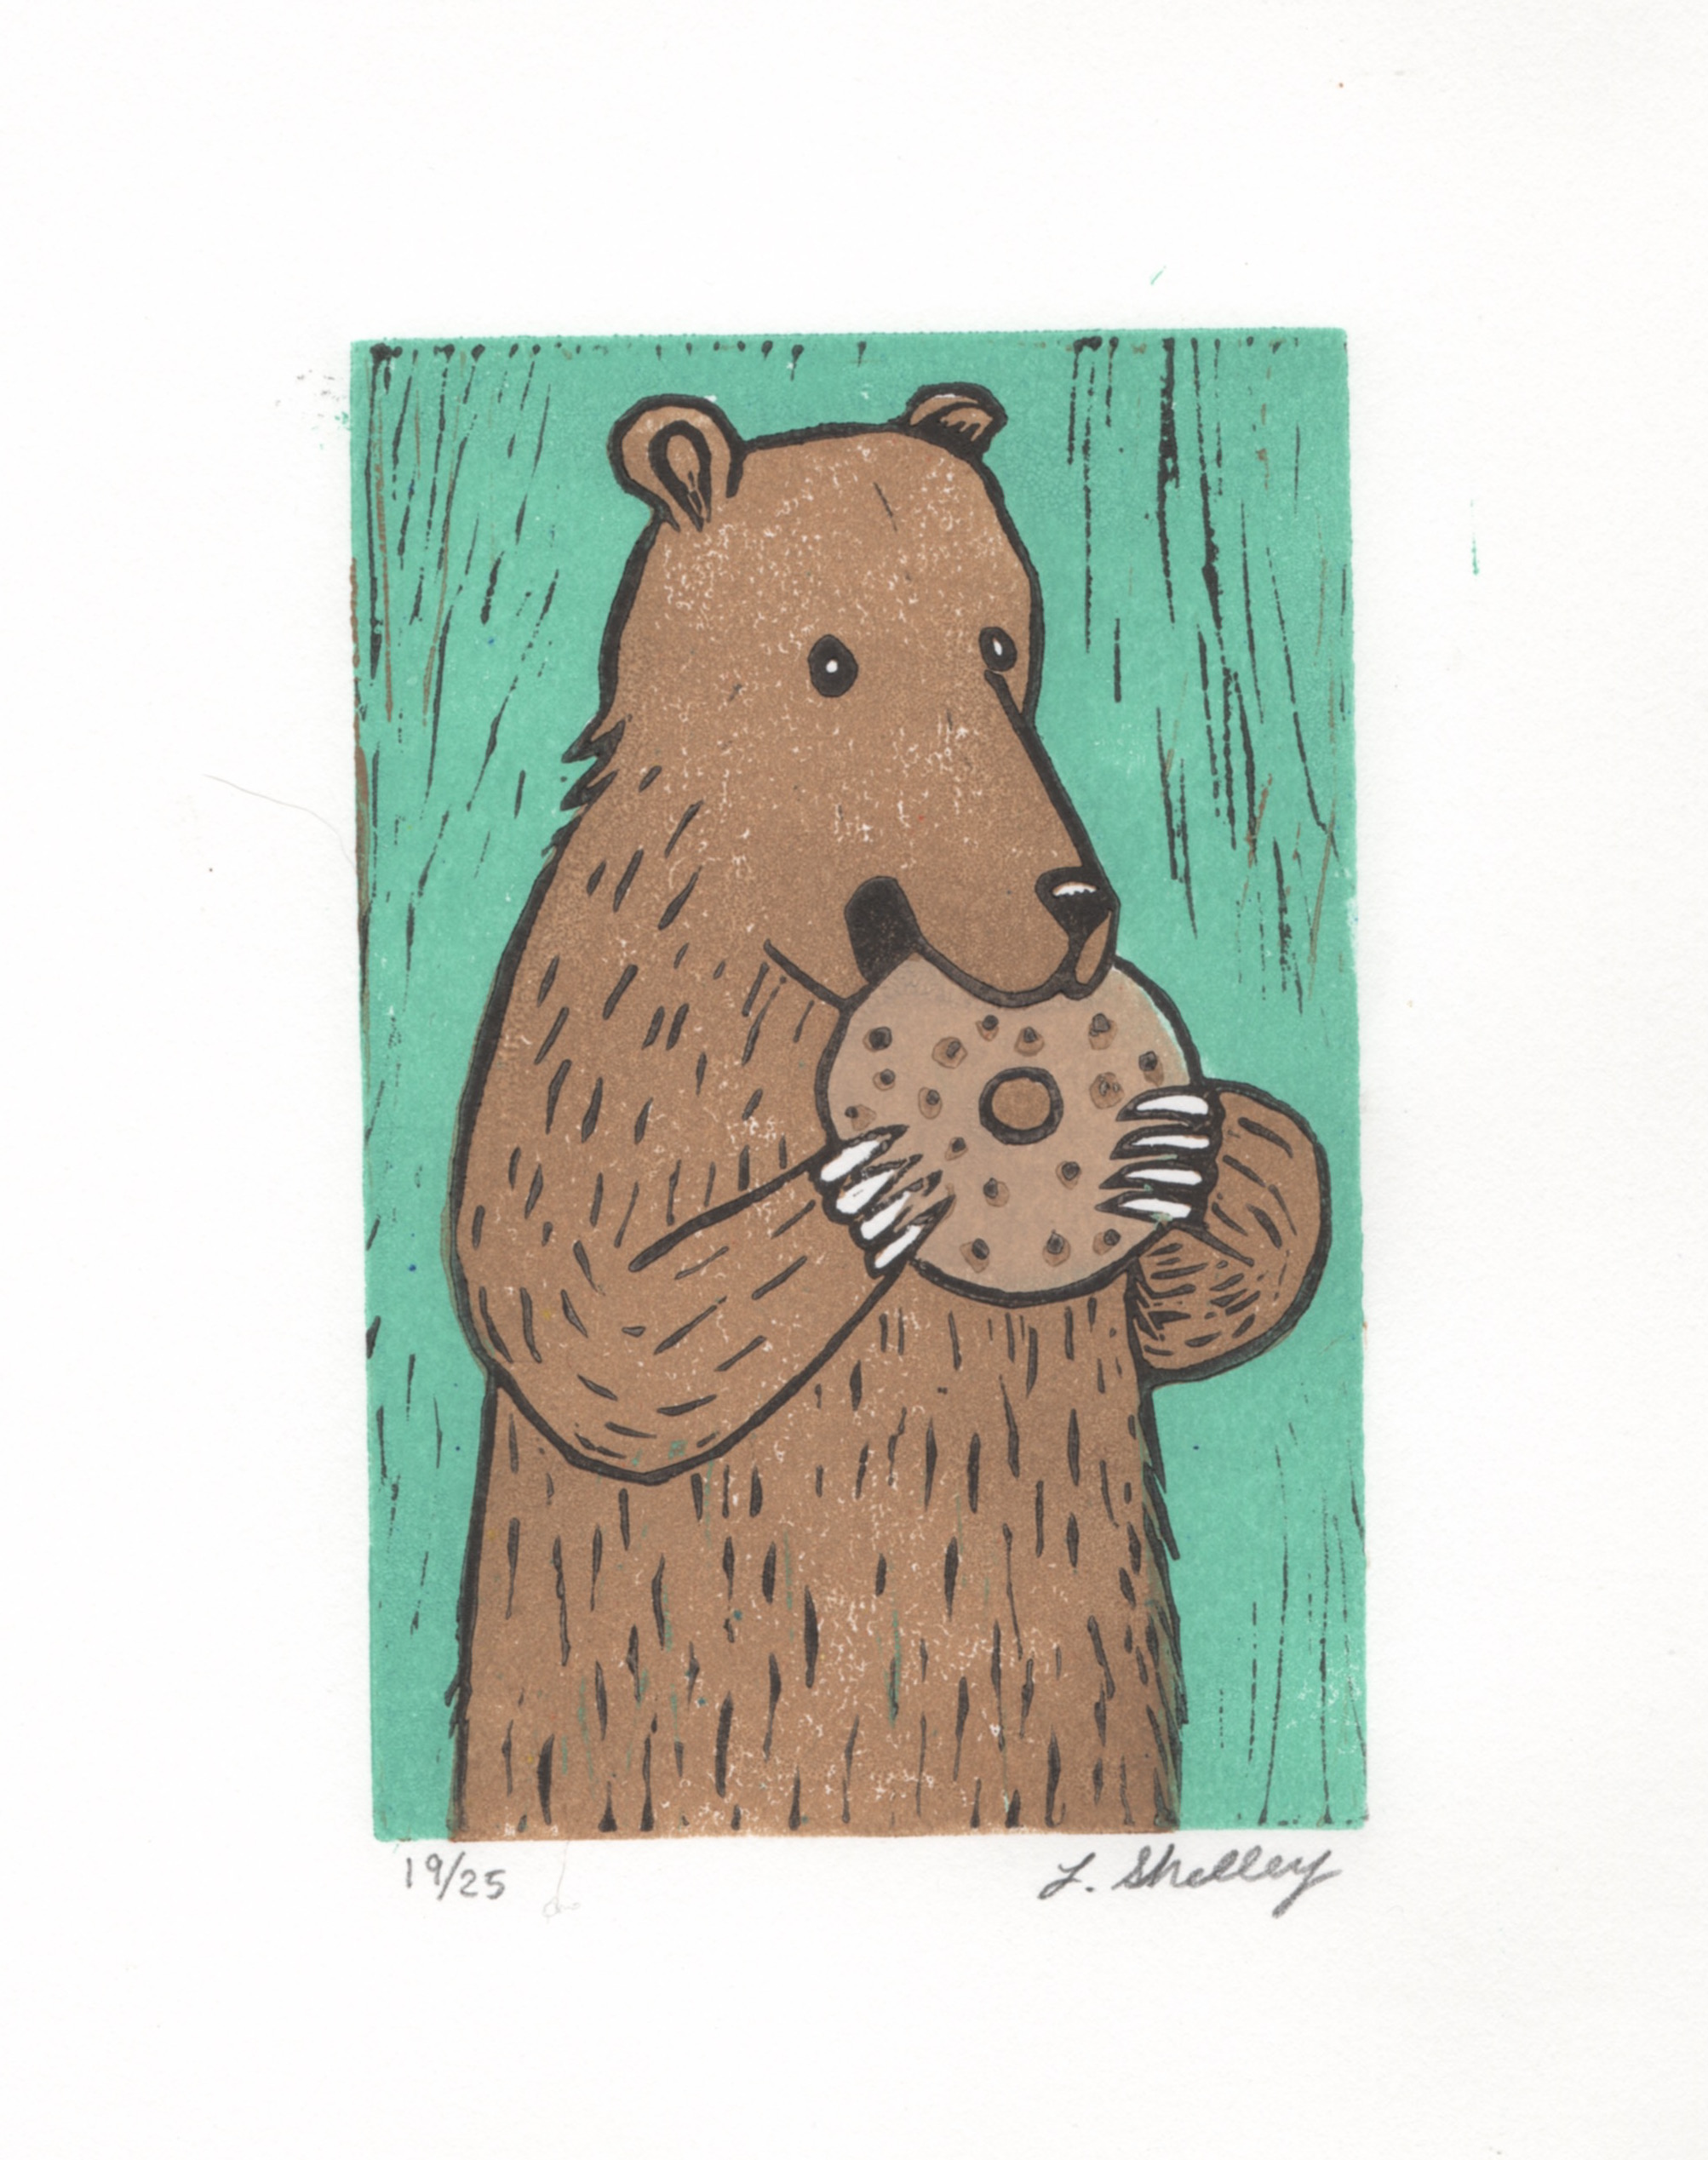 Bear with Bagel/Donut